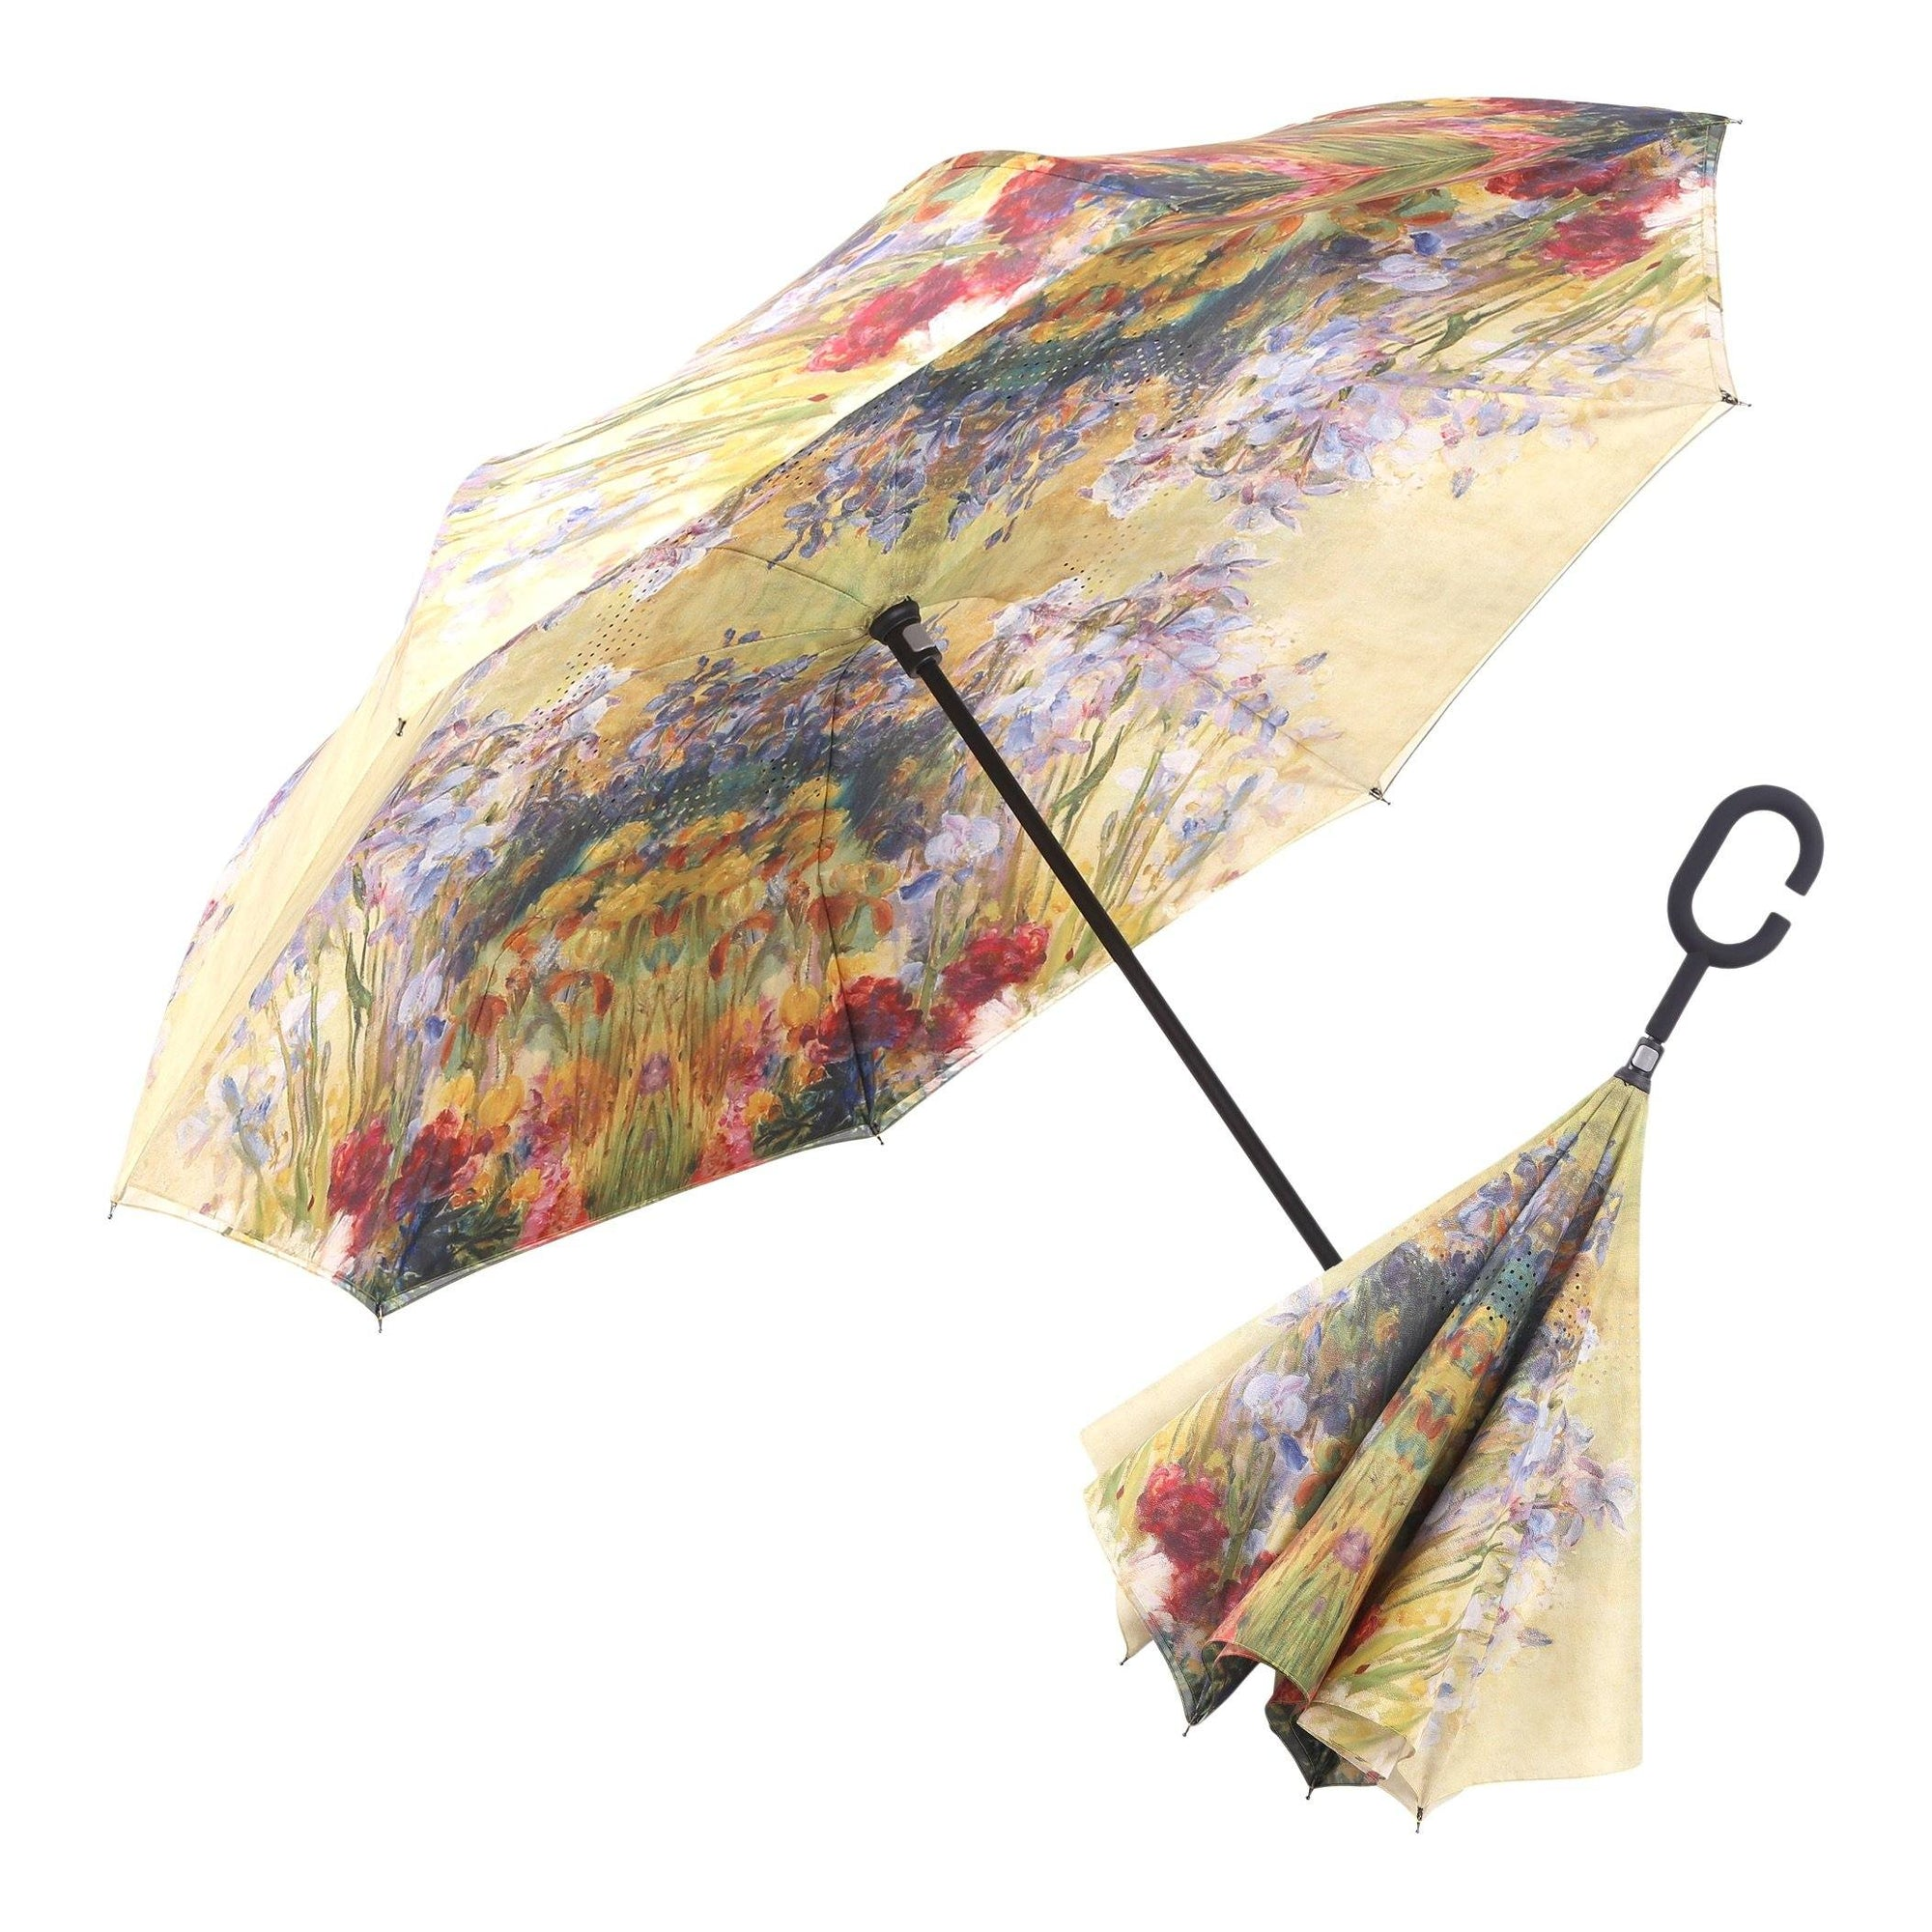 Image of a RainCaper Tiffany Peonies & Iris inverted umbrella shown both open and closed